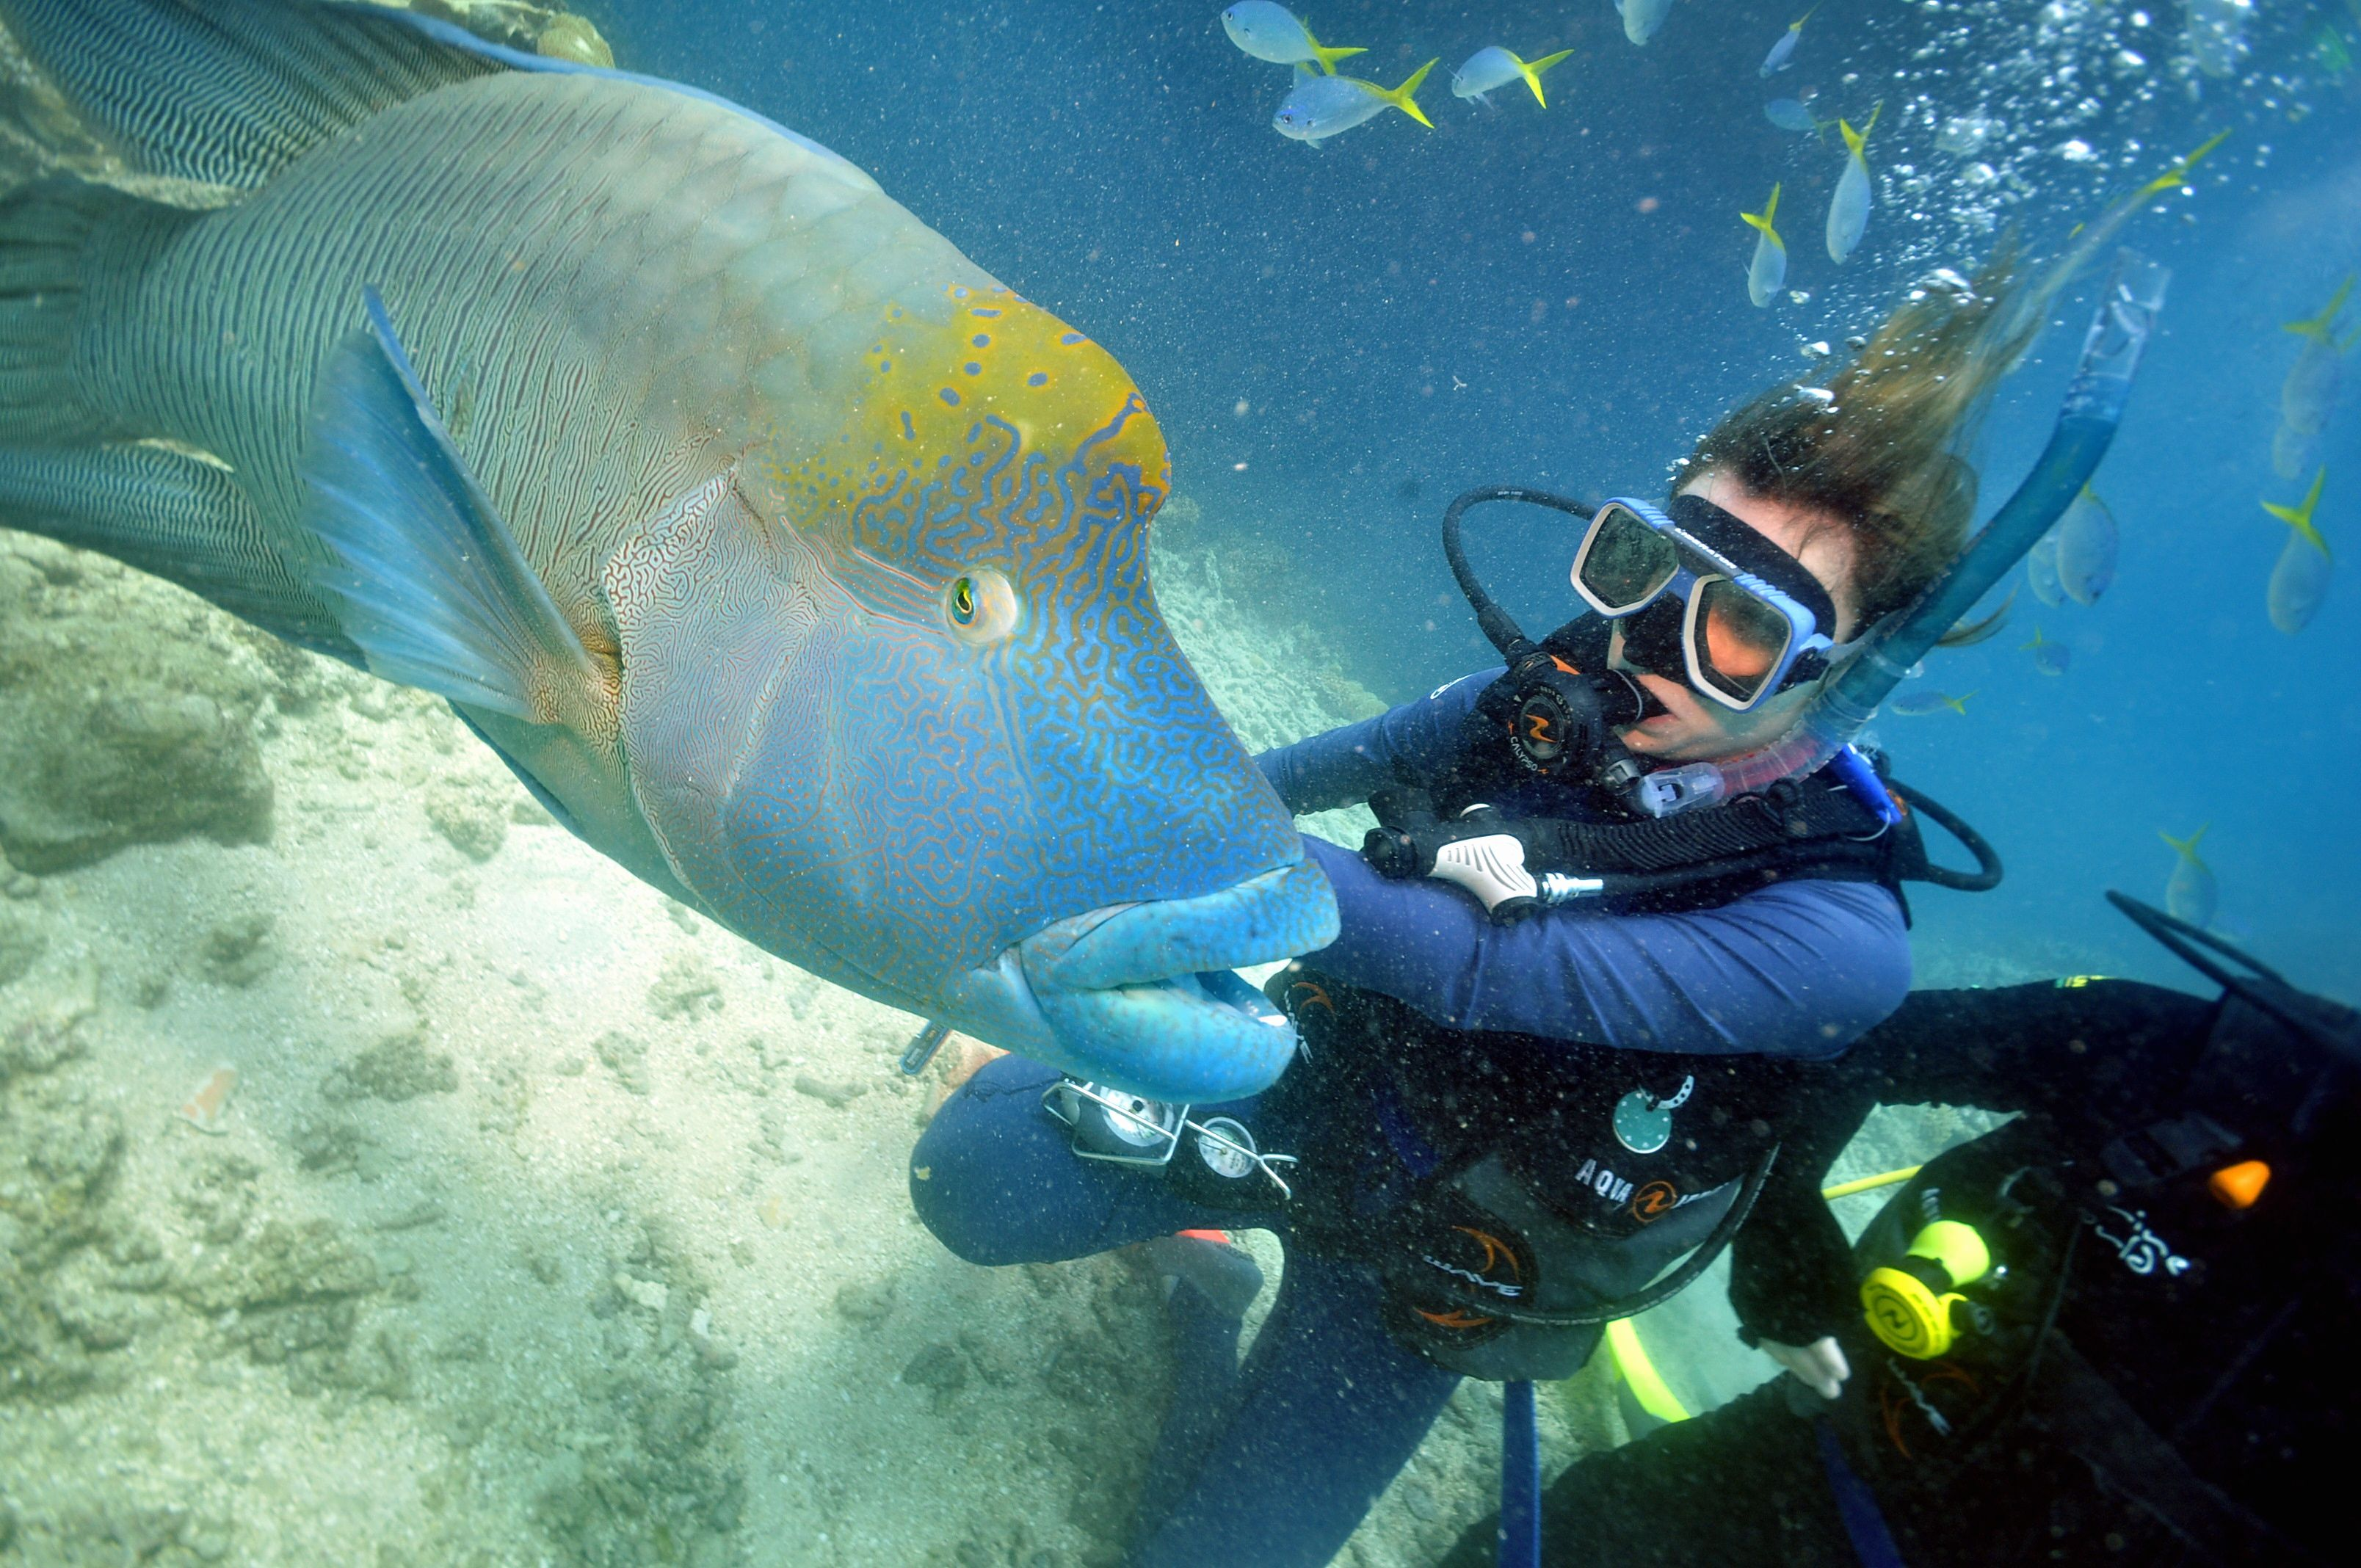 Finding nemo scuba diving the great barrier reef oceania - Dive great barrier reef ...